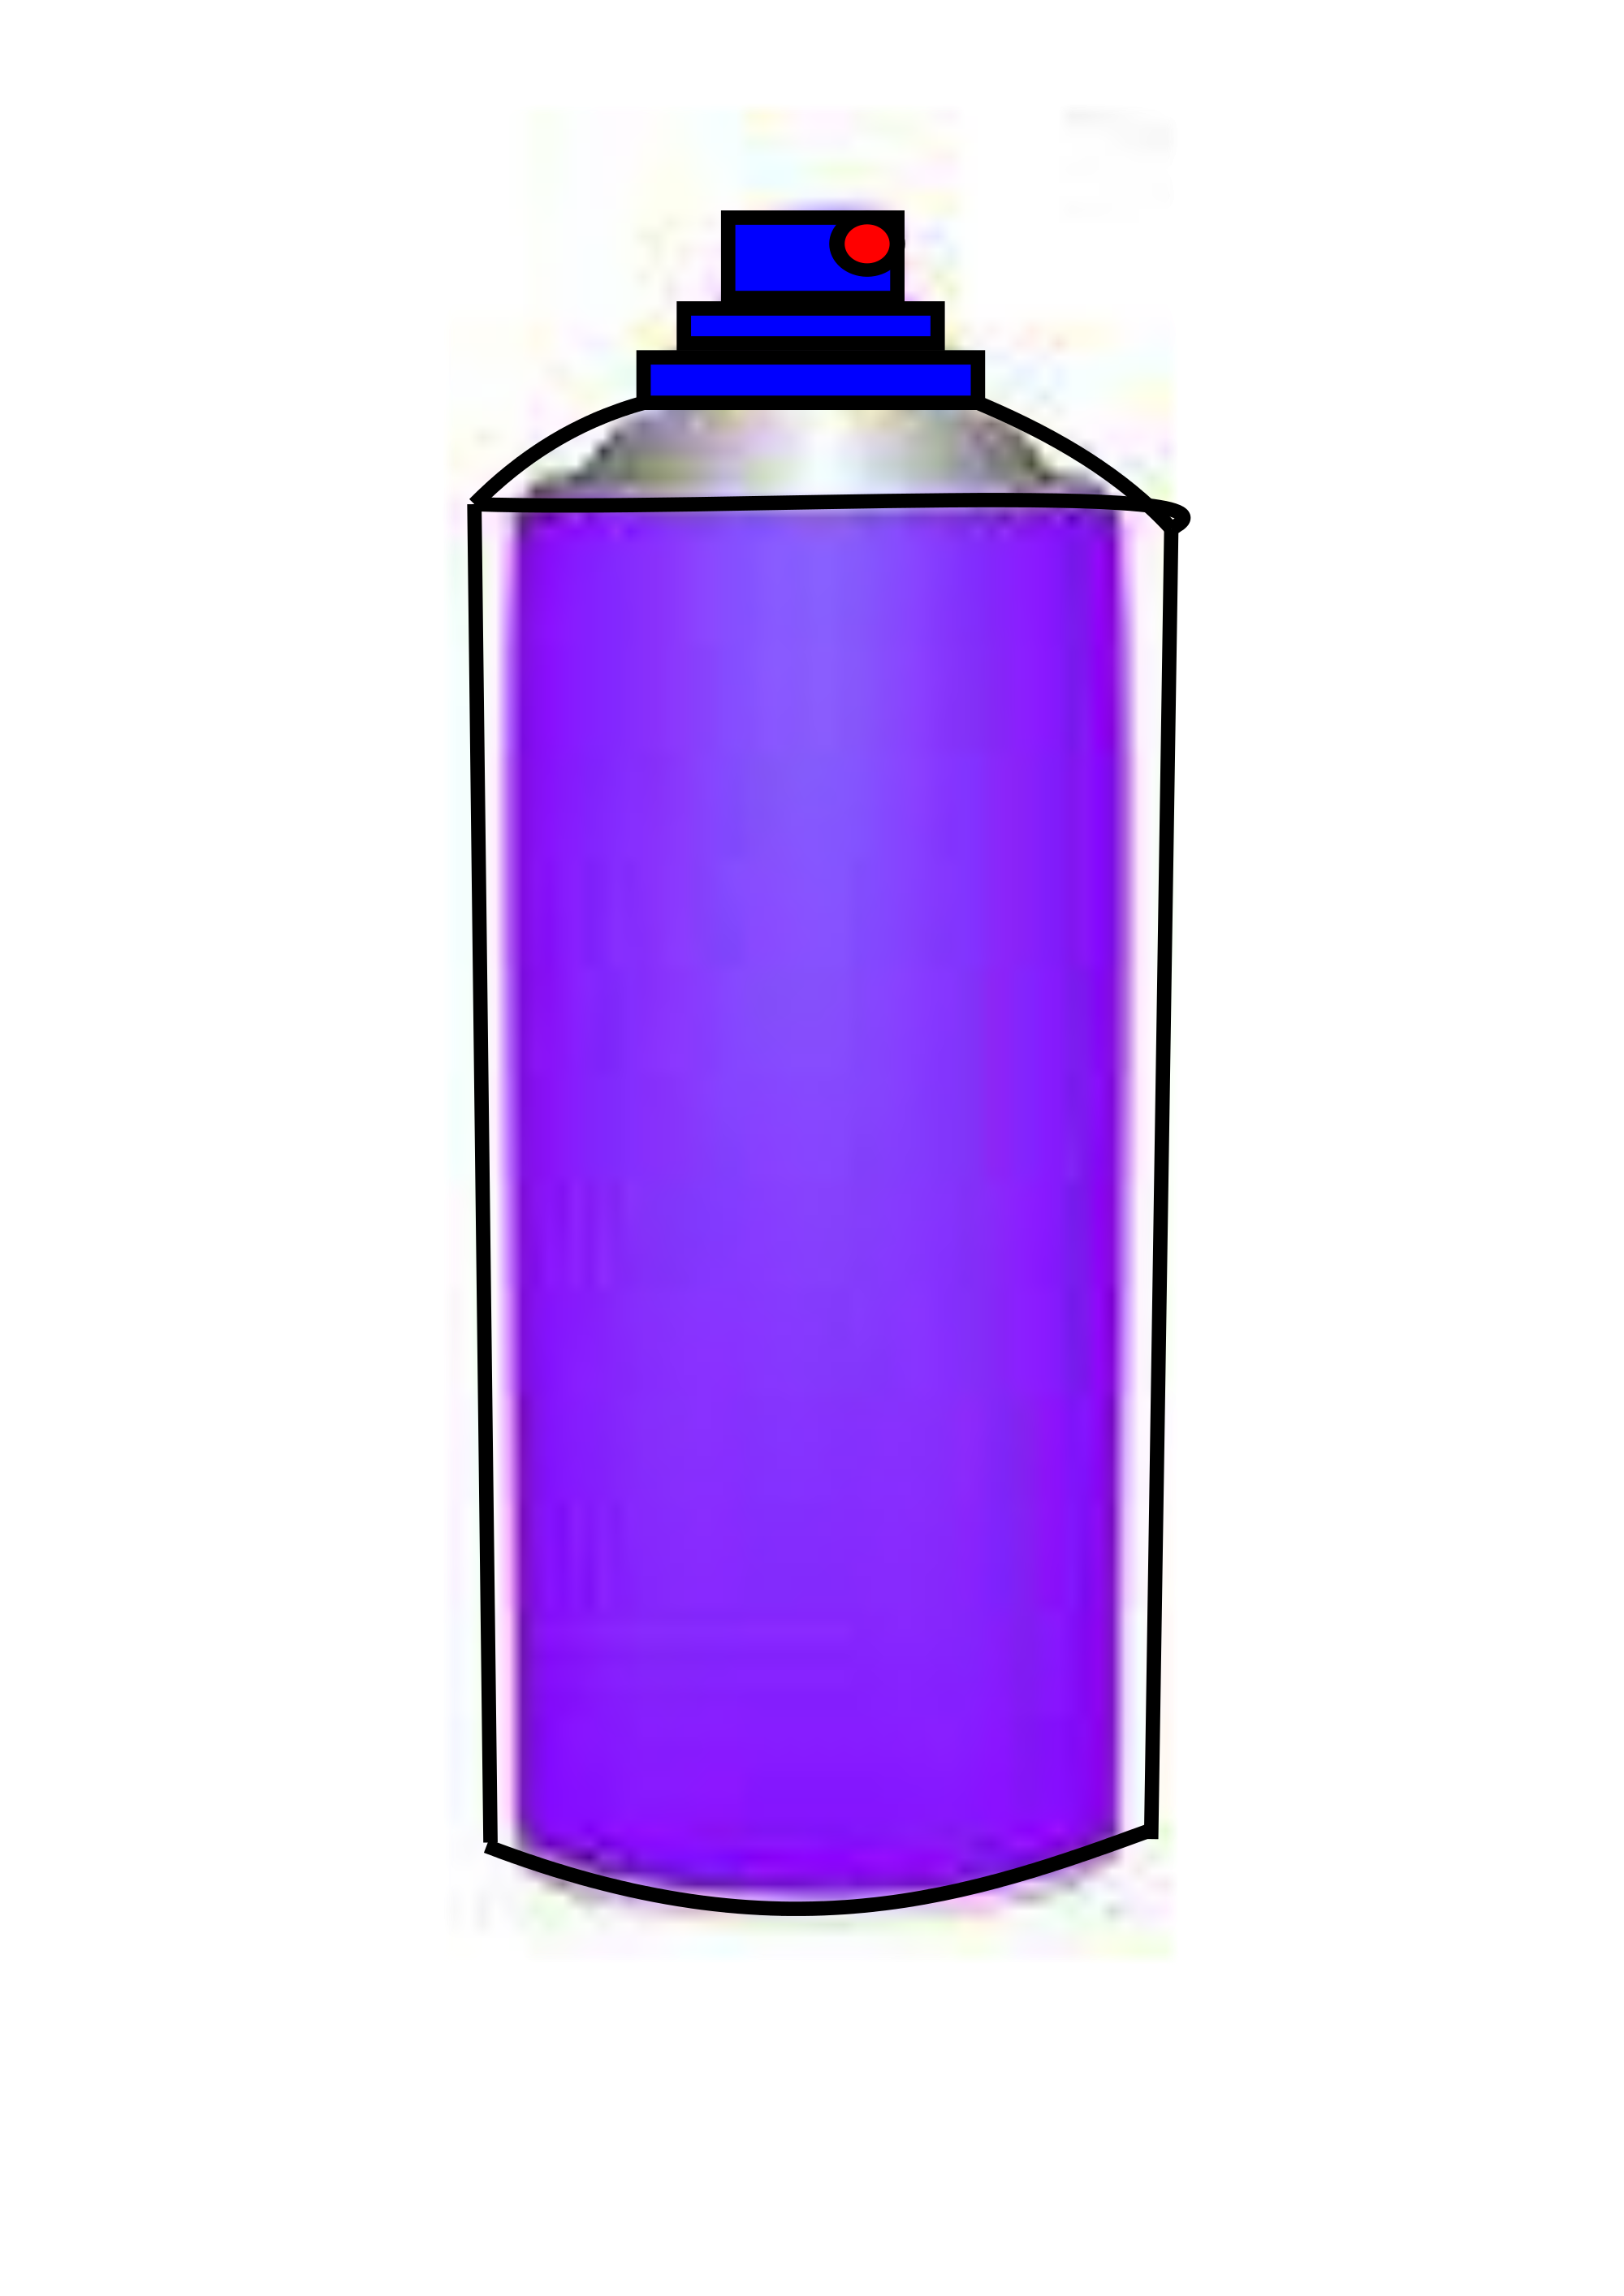 Spray paint can png. File svg wikimedia commons